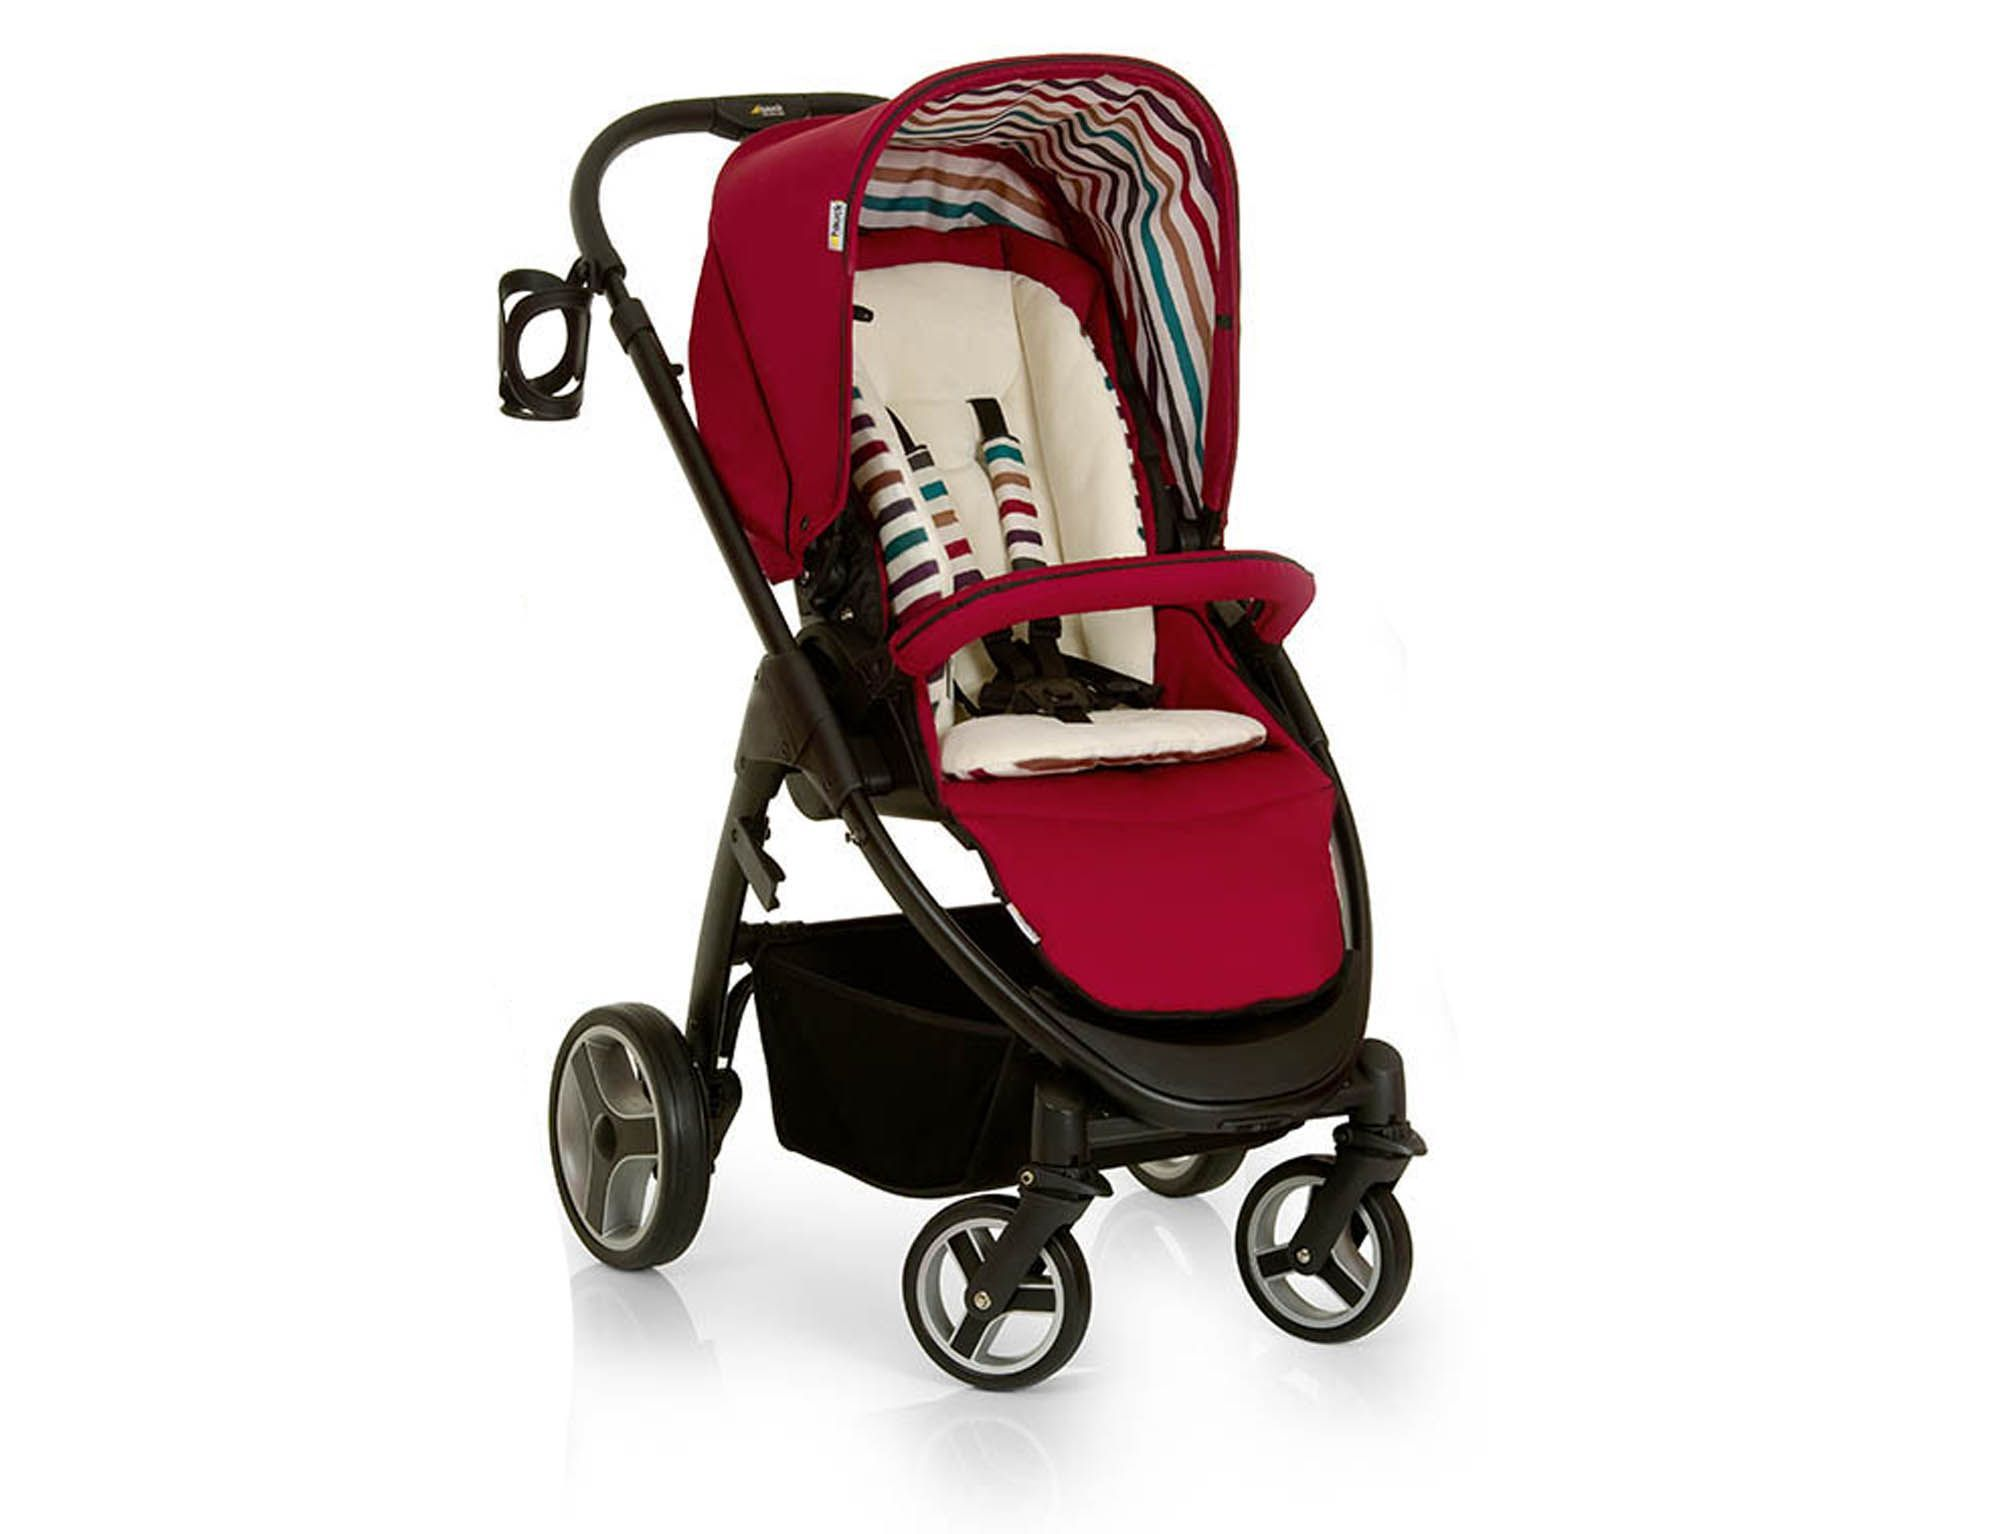 Hauck Lacrosse All in One Pram and Pushchair Travel System